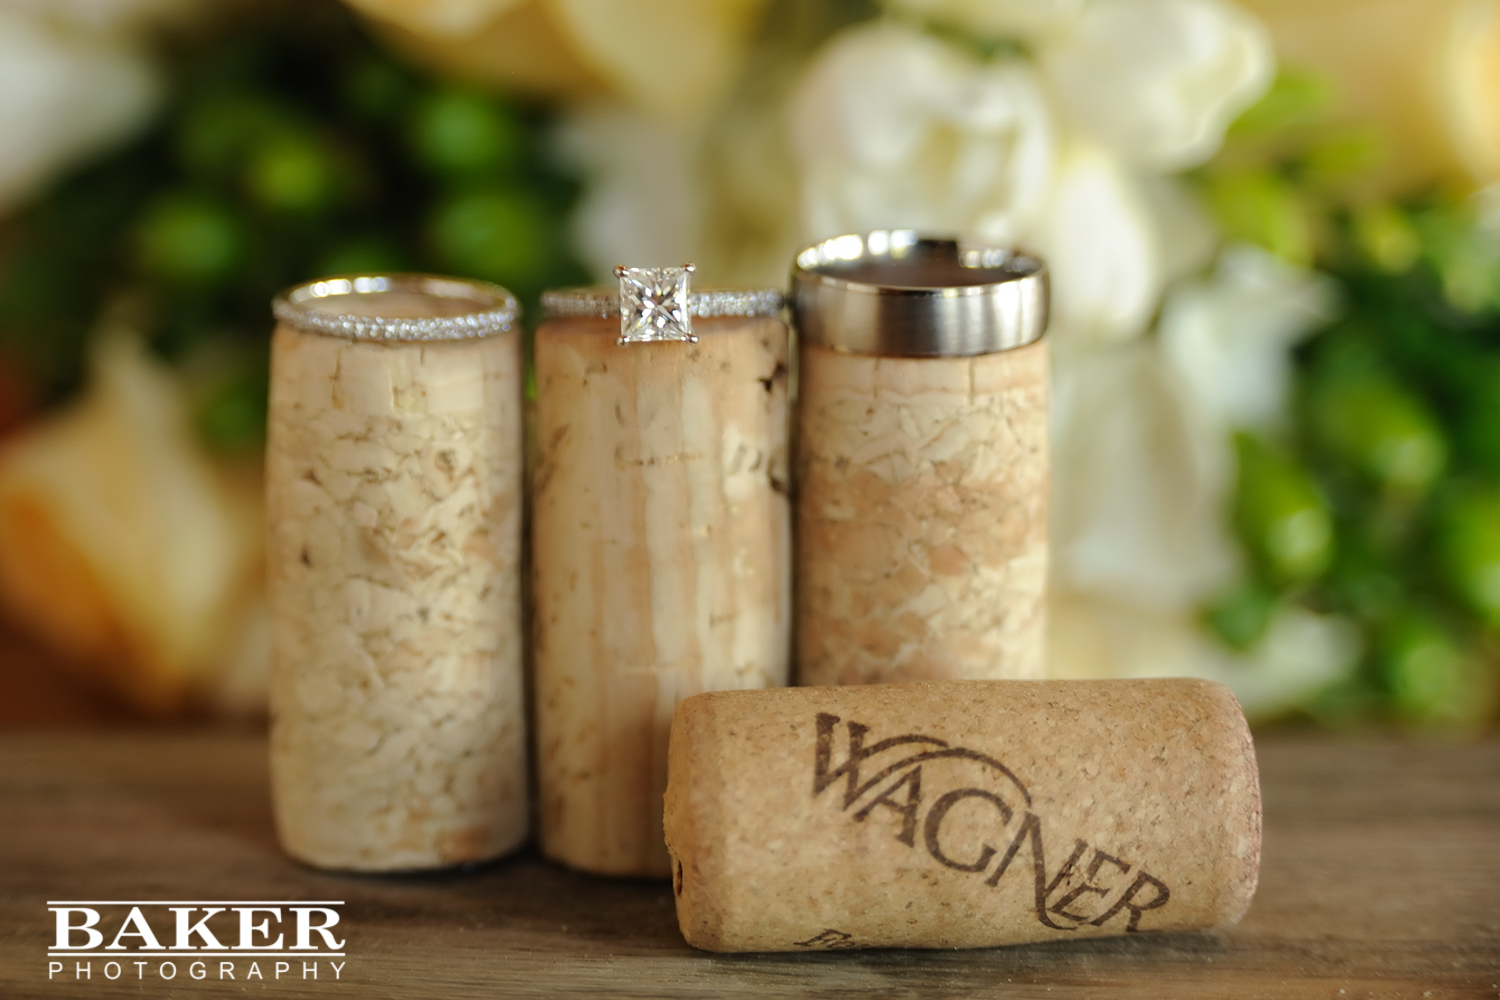 Wedding rings on corks – Photo credit Baker Photography